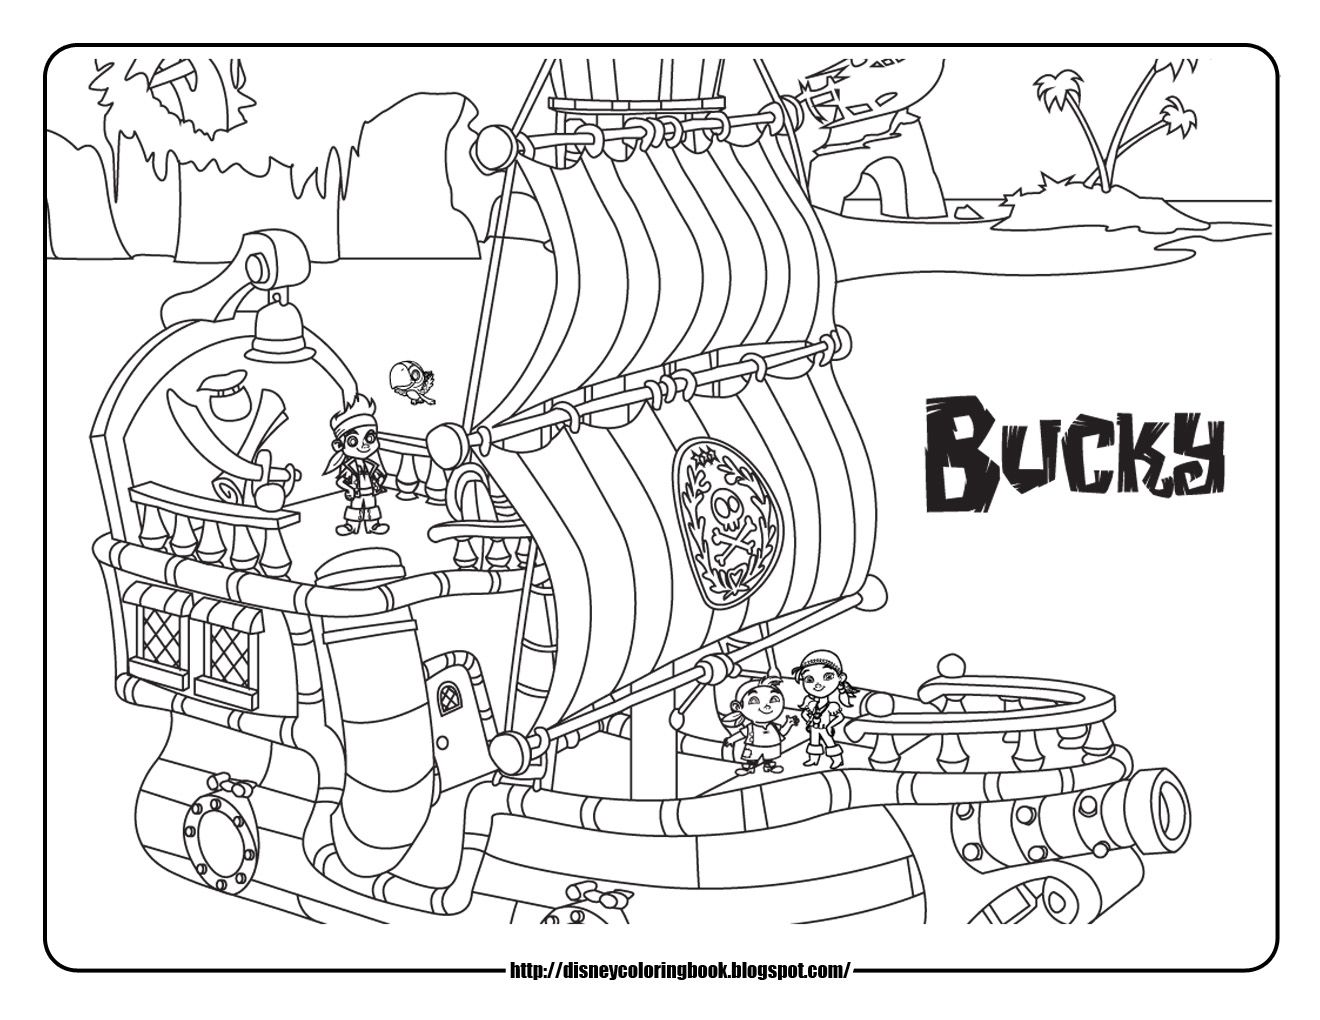 Jake And The Never Land Pirates Pirate Ship Coloring Pages Bucky Pirate Coloring Pages Coloring Pictures For Kids Disney Coloring Pages